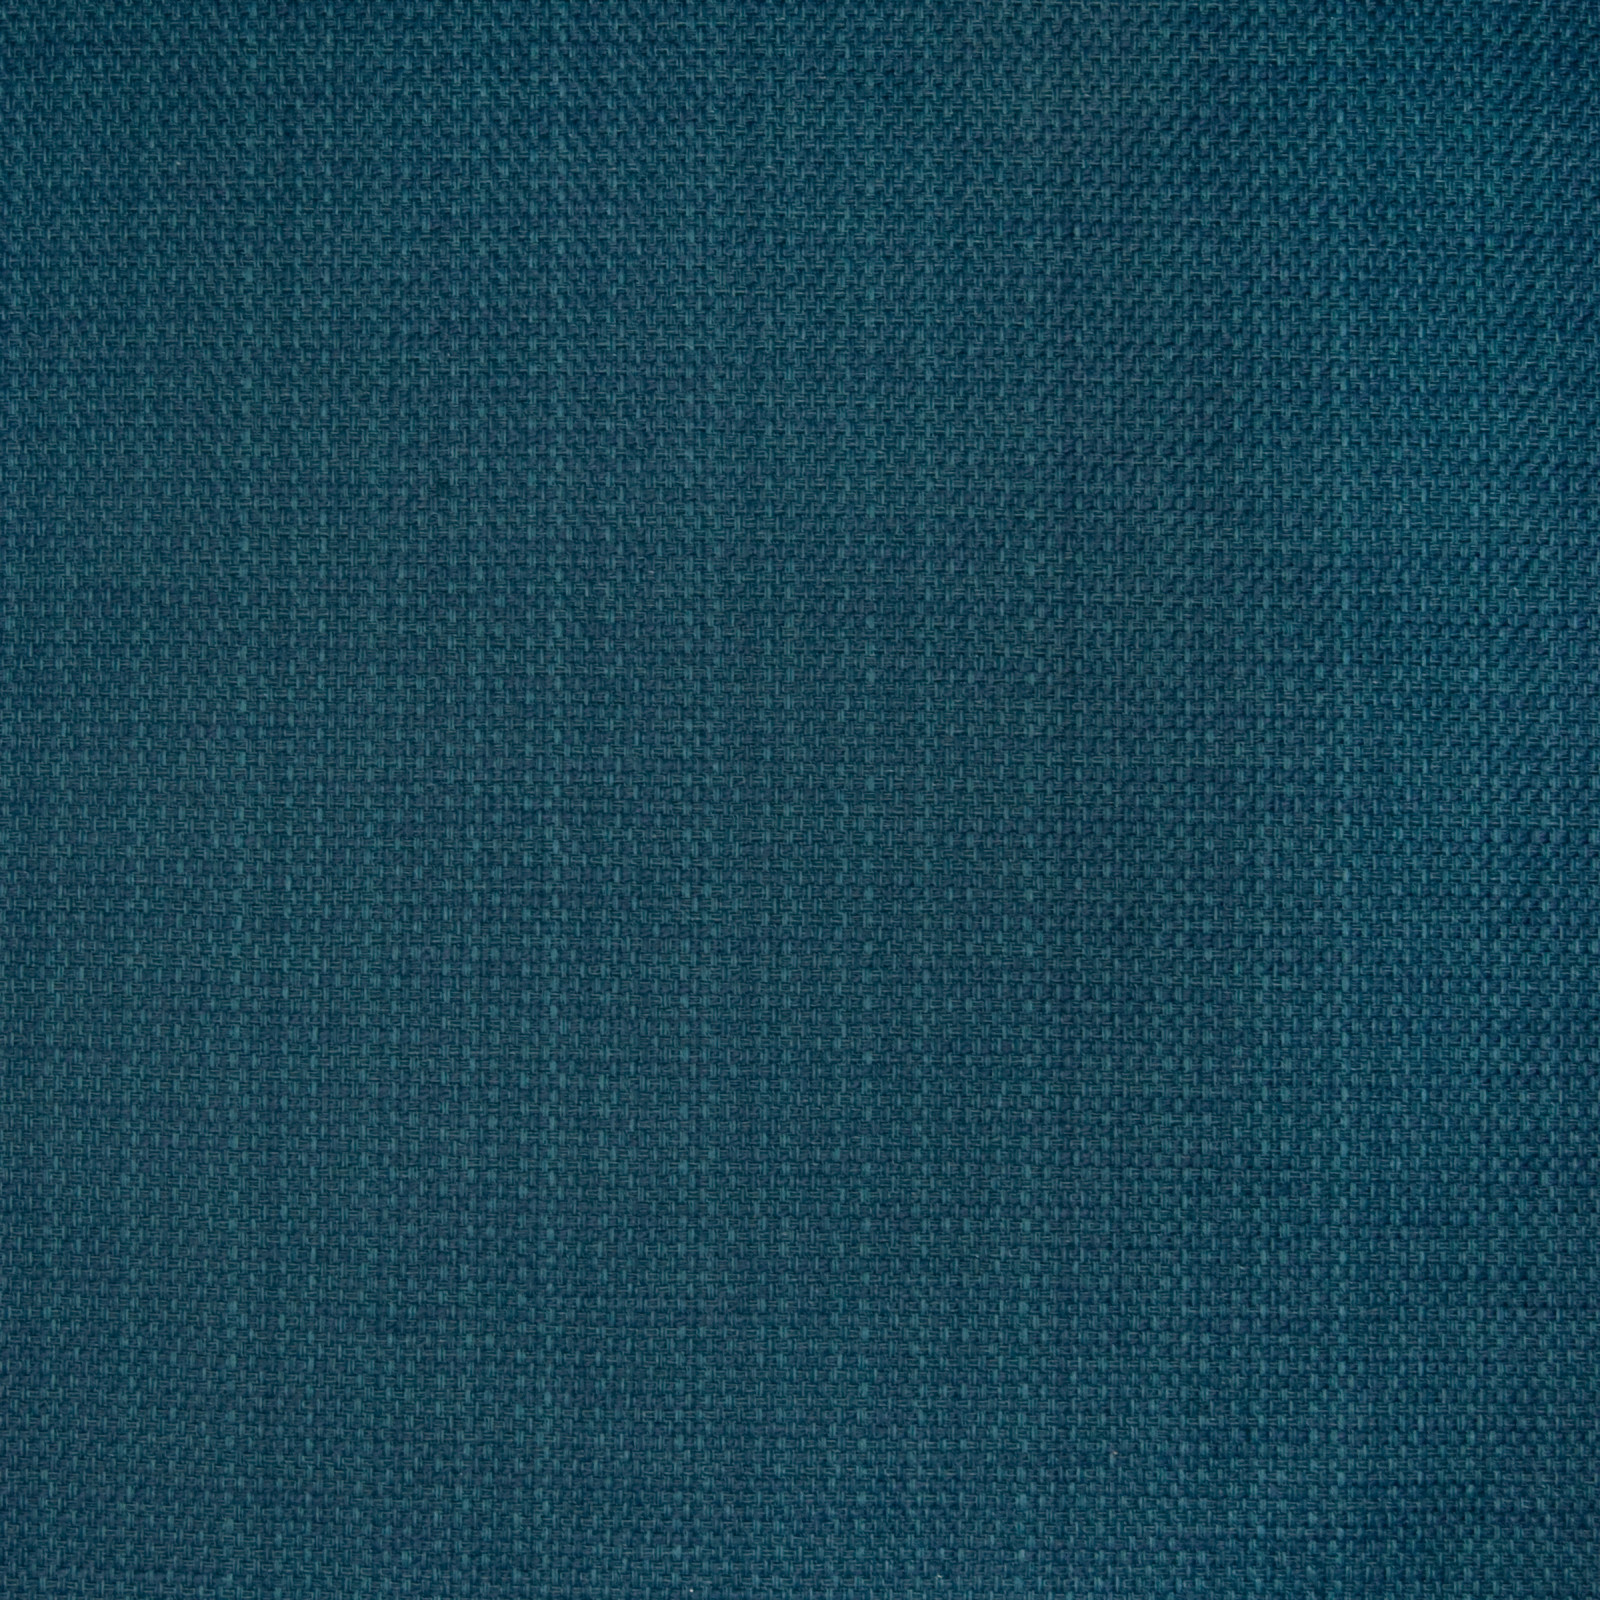 Deep Sea Blue And Teal Solid Texture Upholstery Fabric